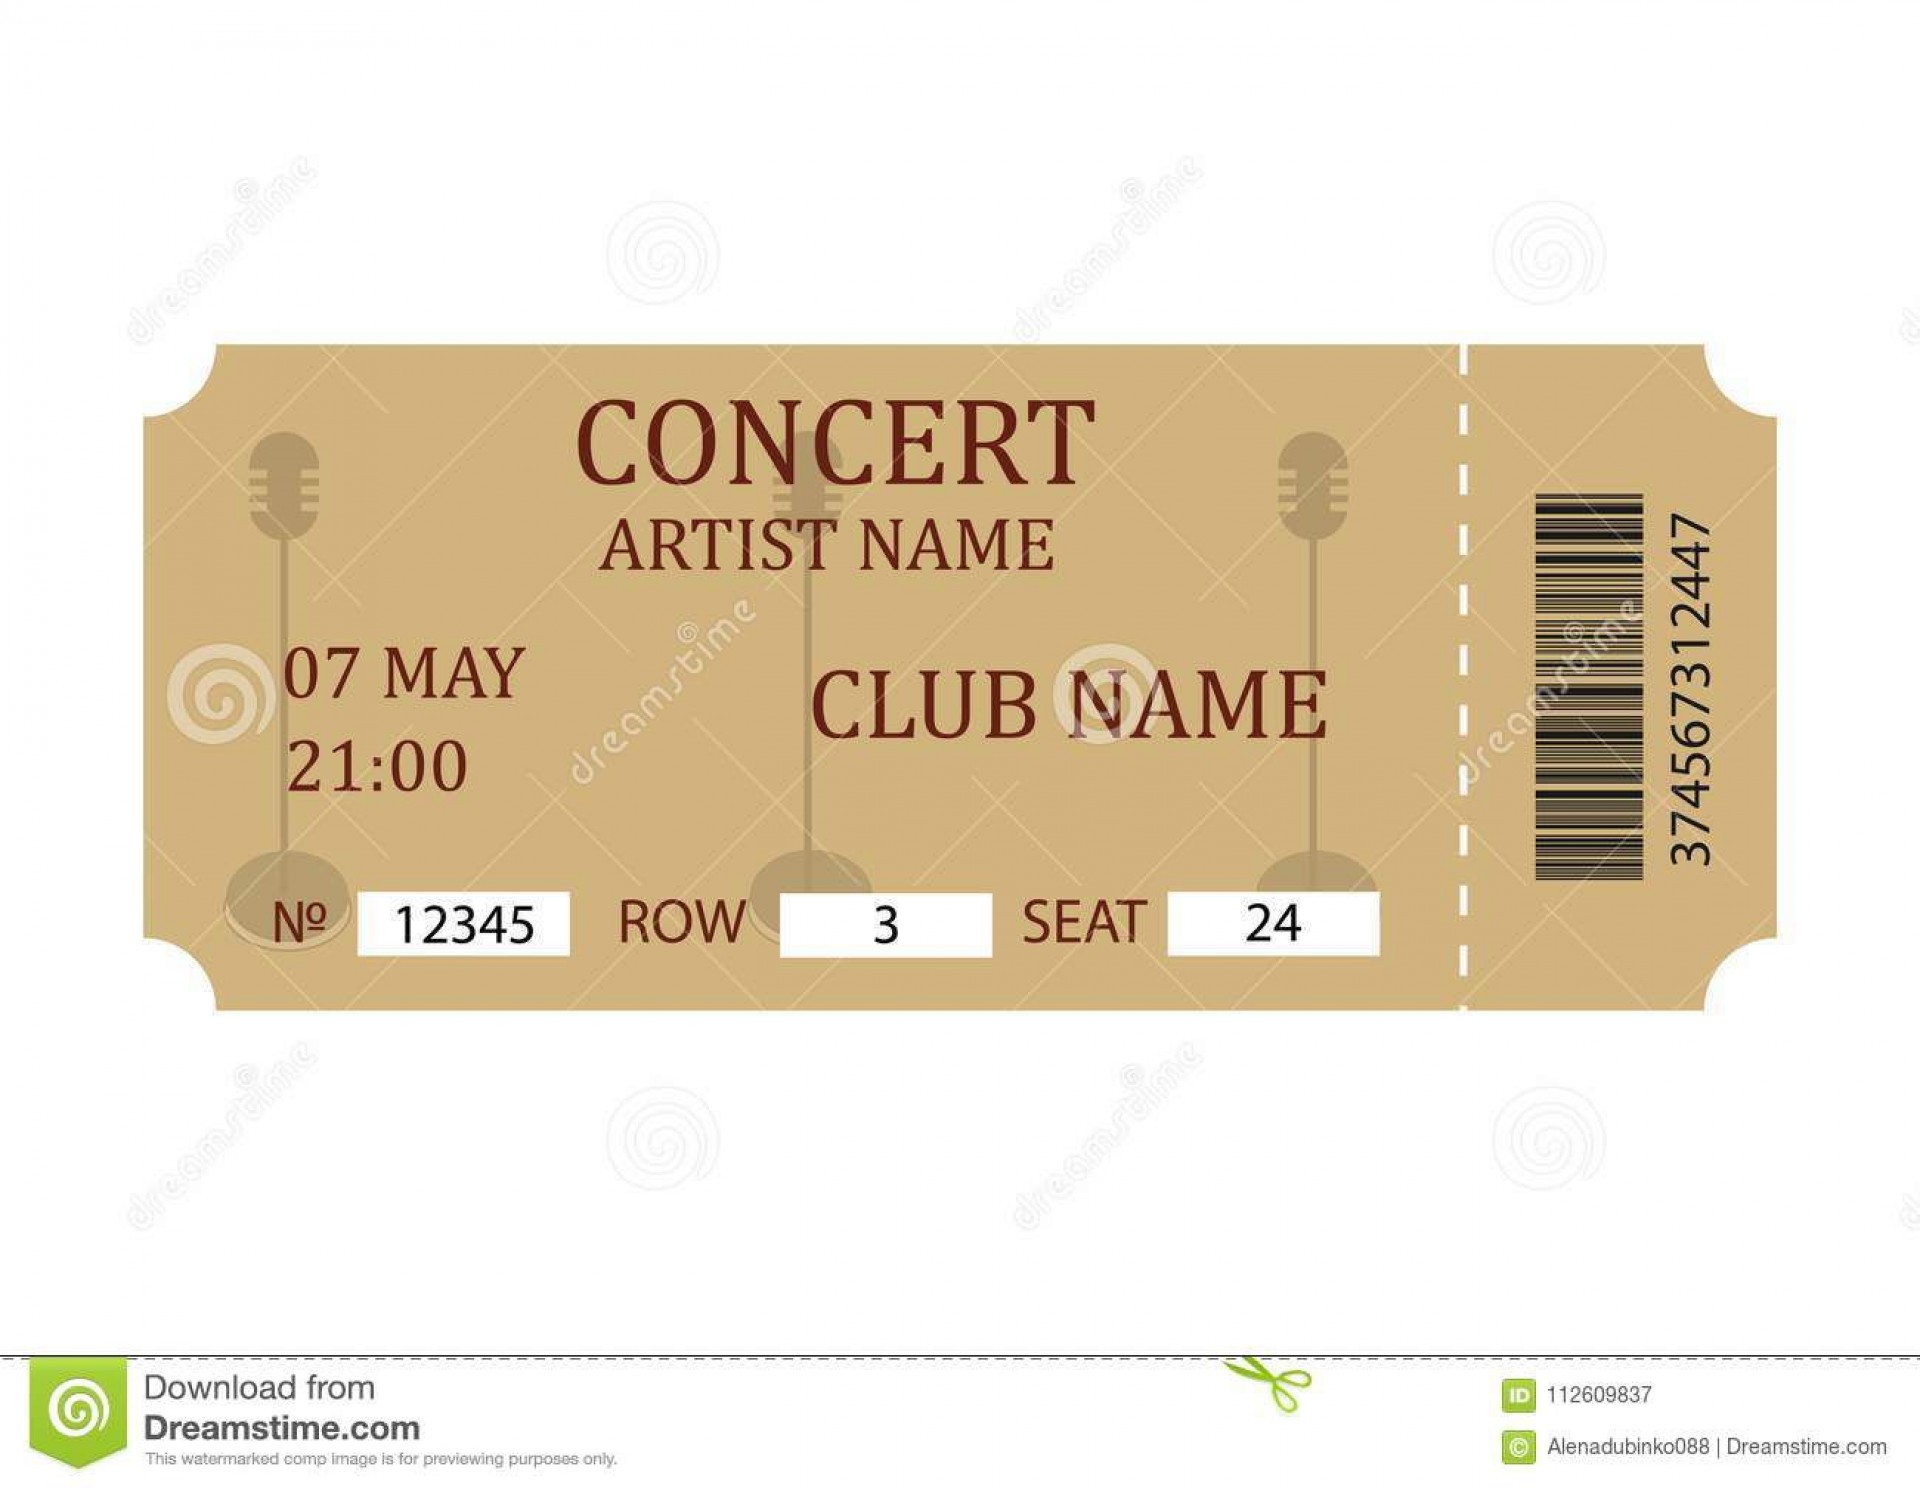 004 Exceptional Vintage Concert Ticket Template Free Download Sample 1920